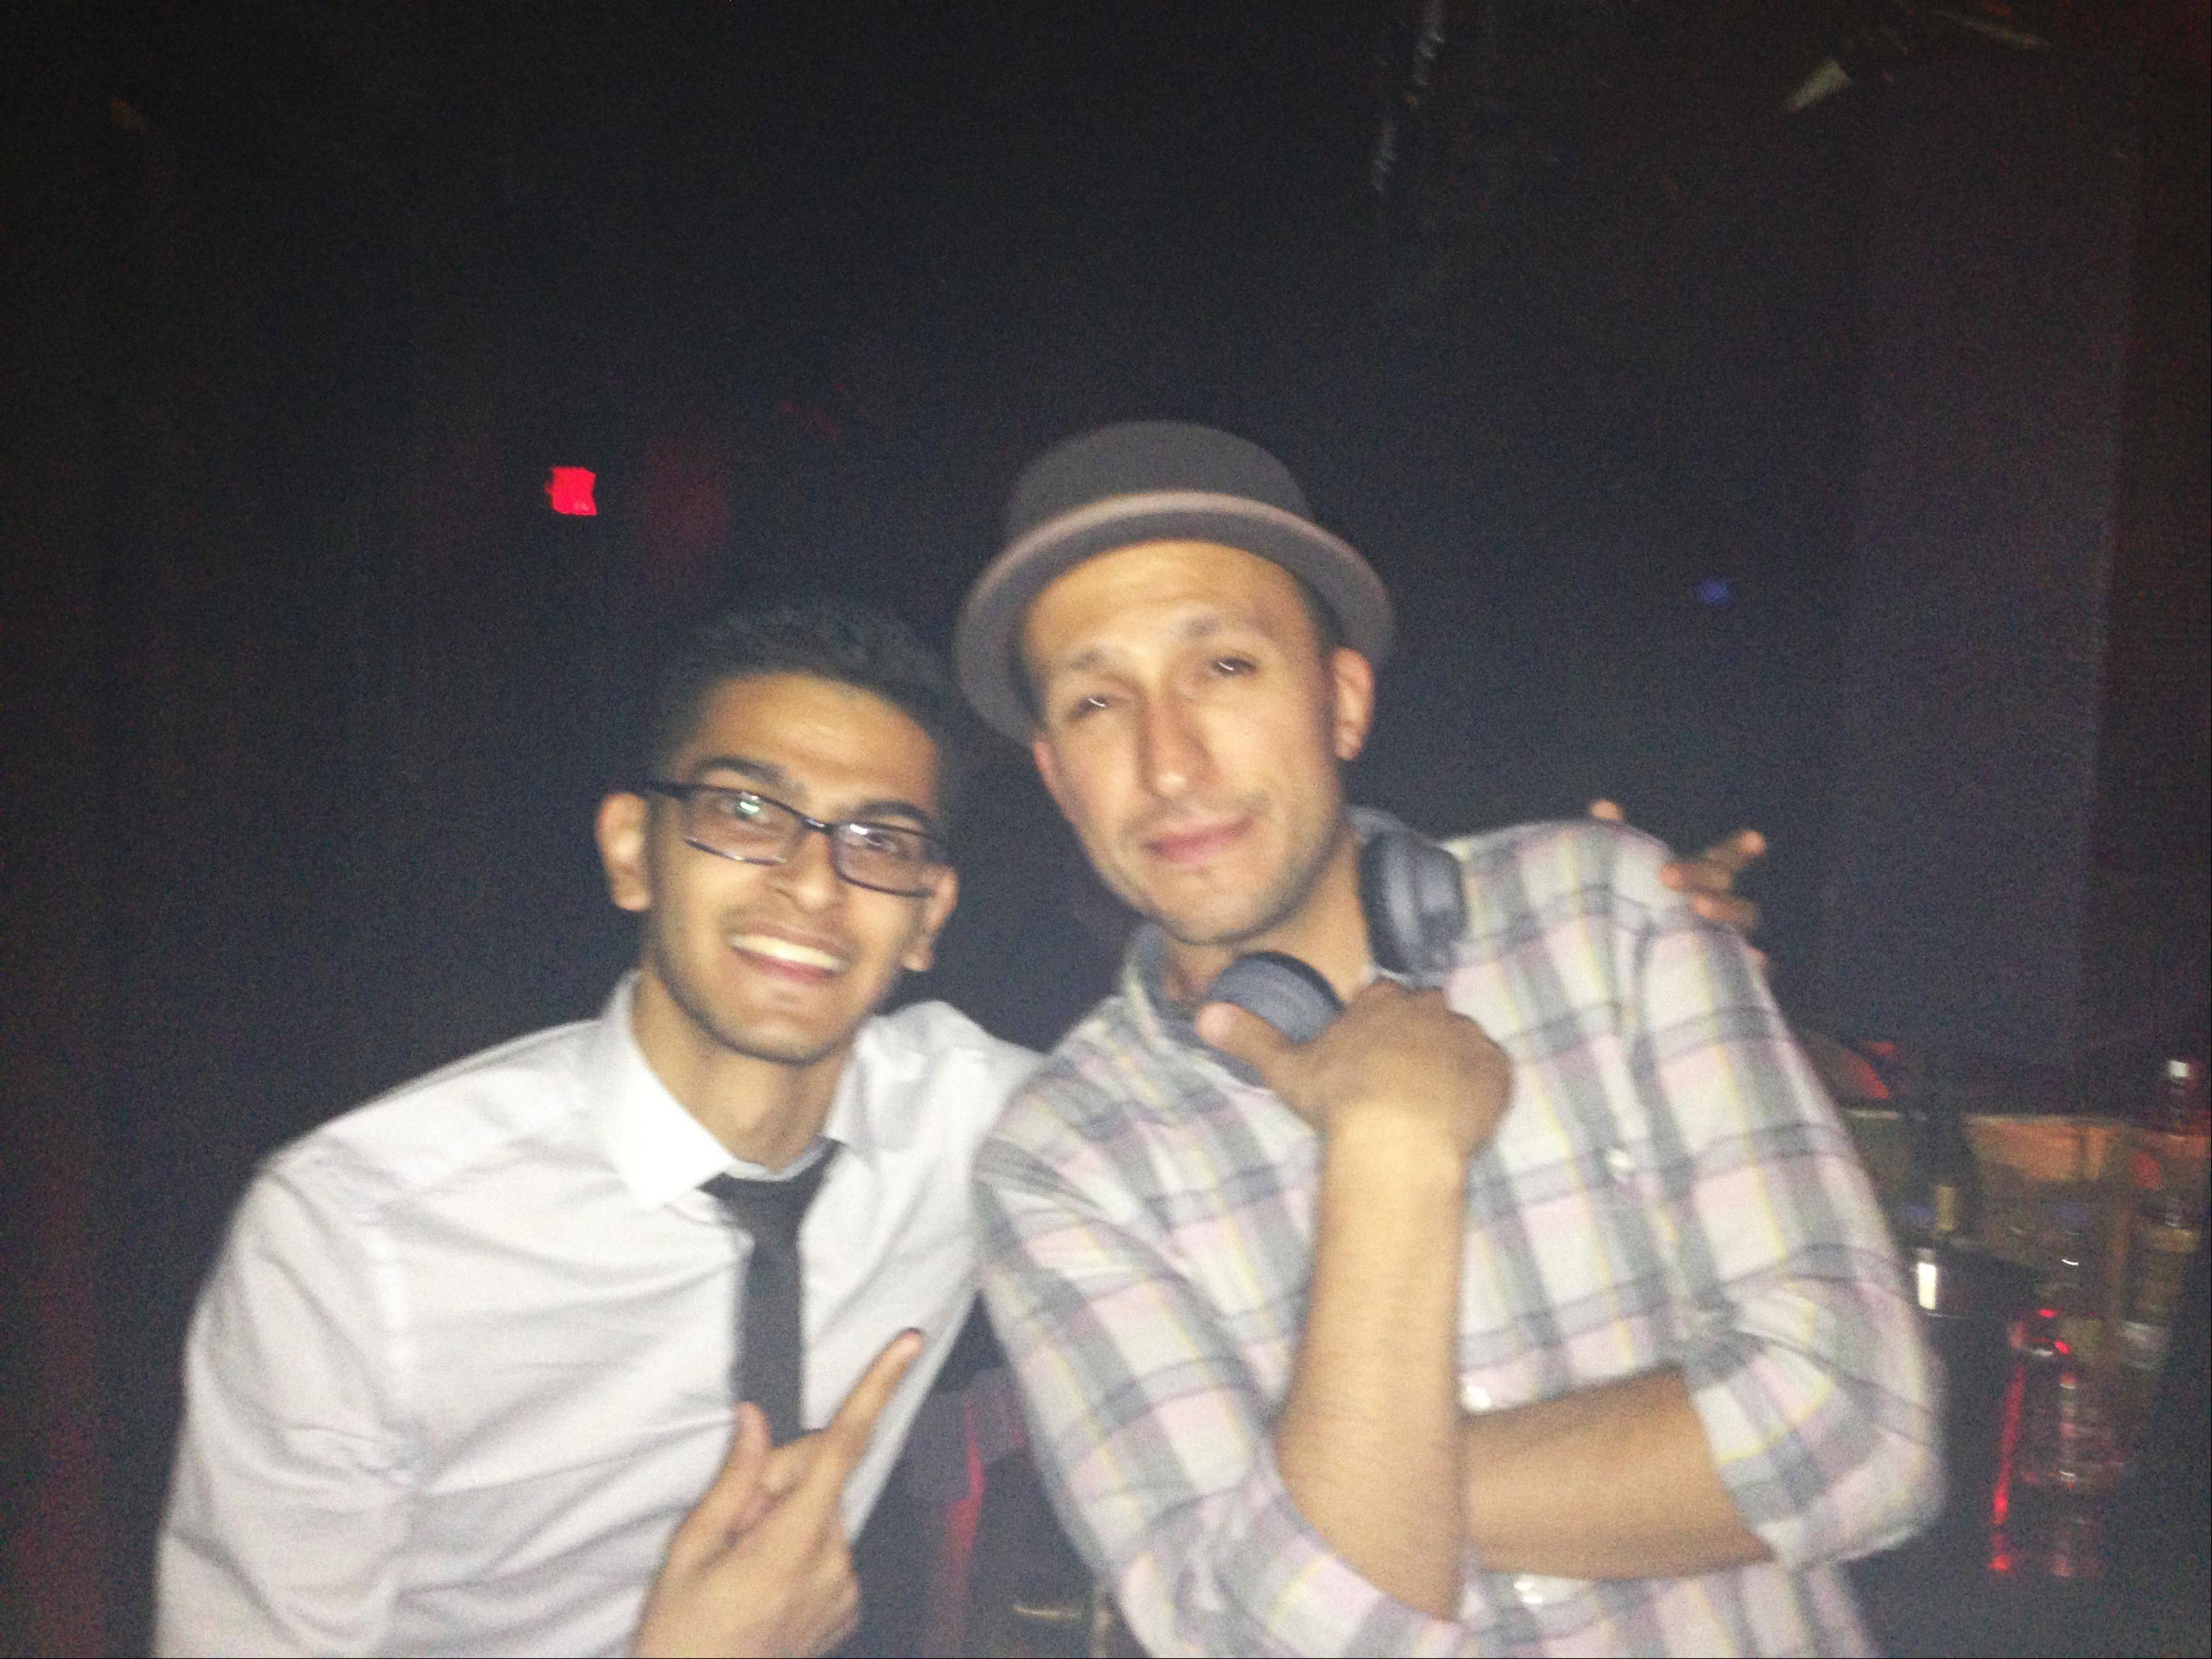 Sahaj Shah, 21, of Schaumburg recently went to Las Vegas and met DJ Vice, one of his music idols.